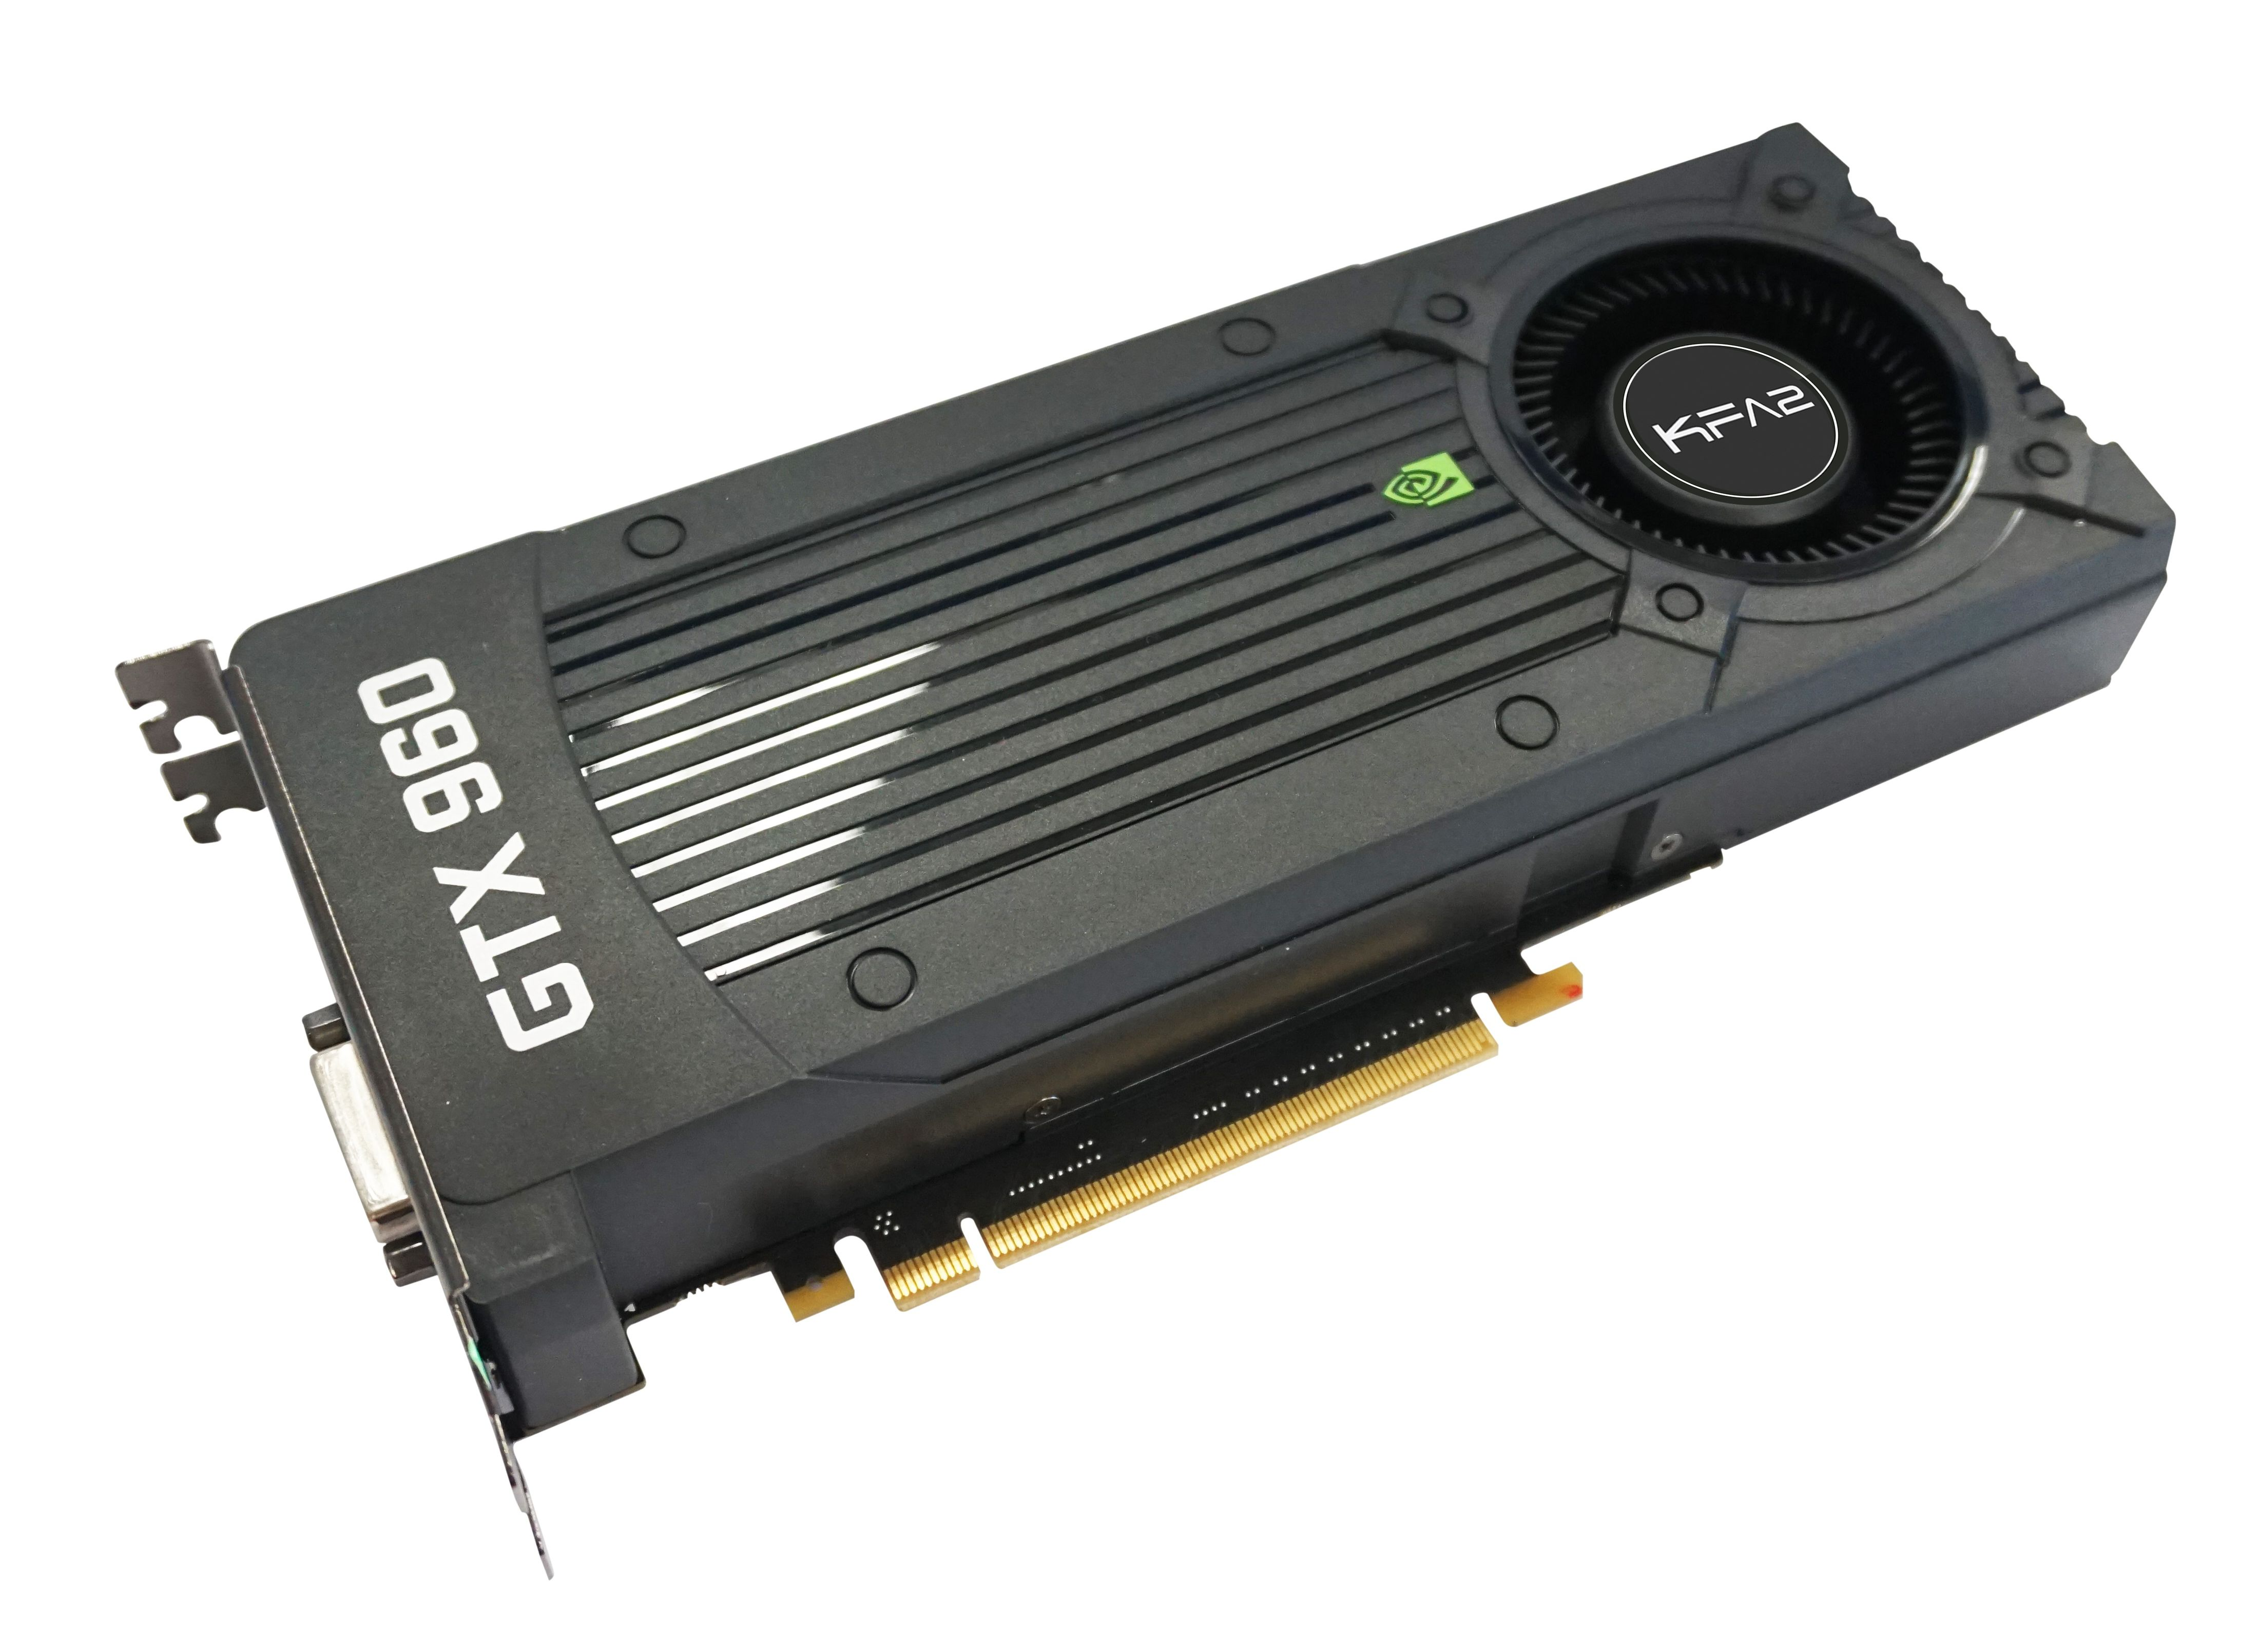 nvidia geforce 960